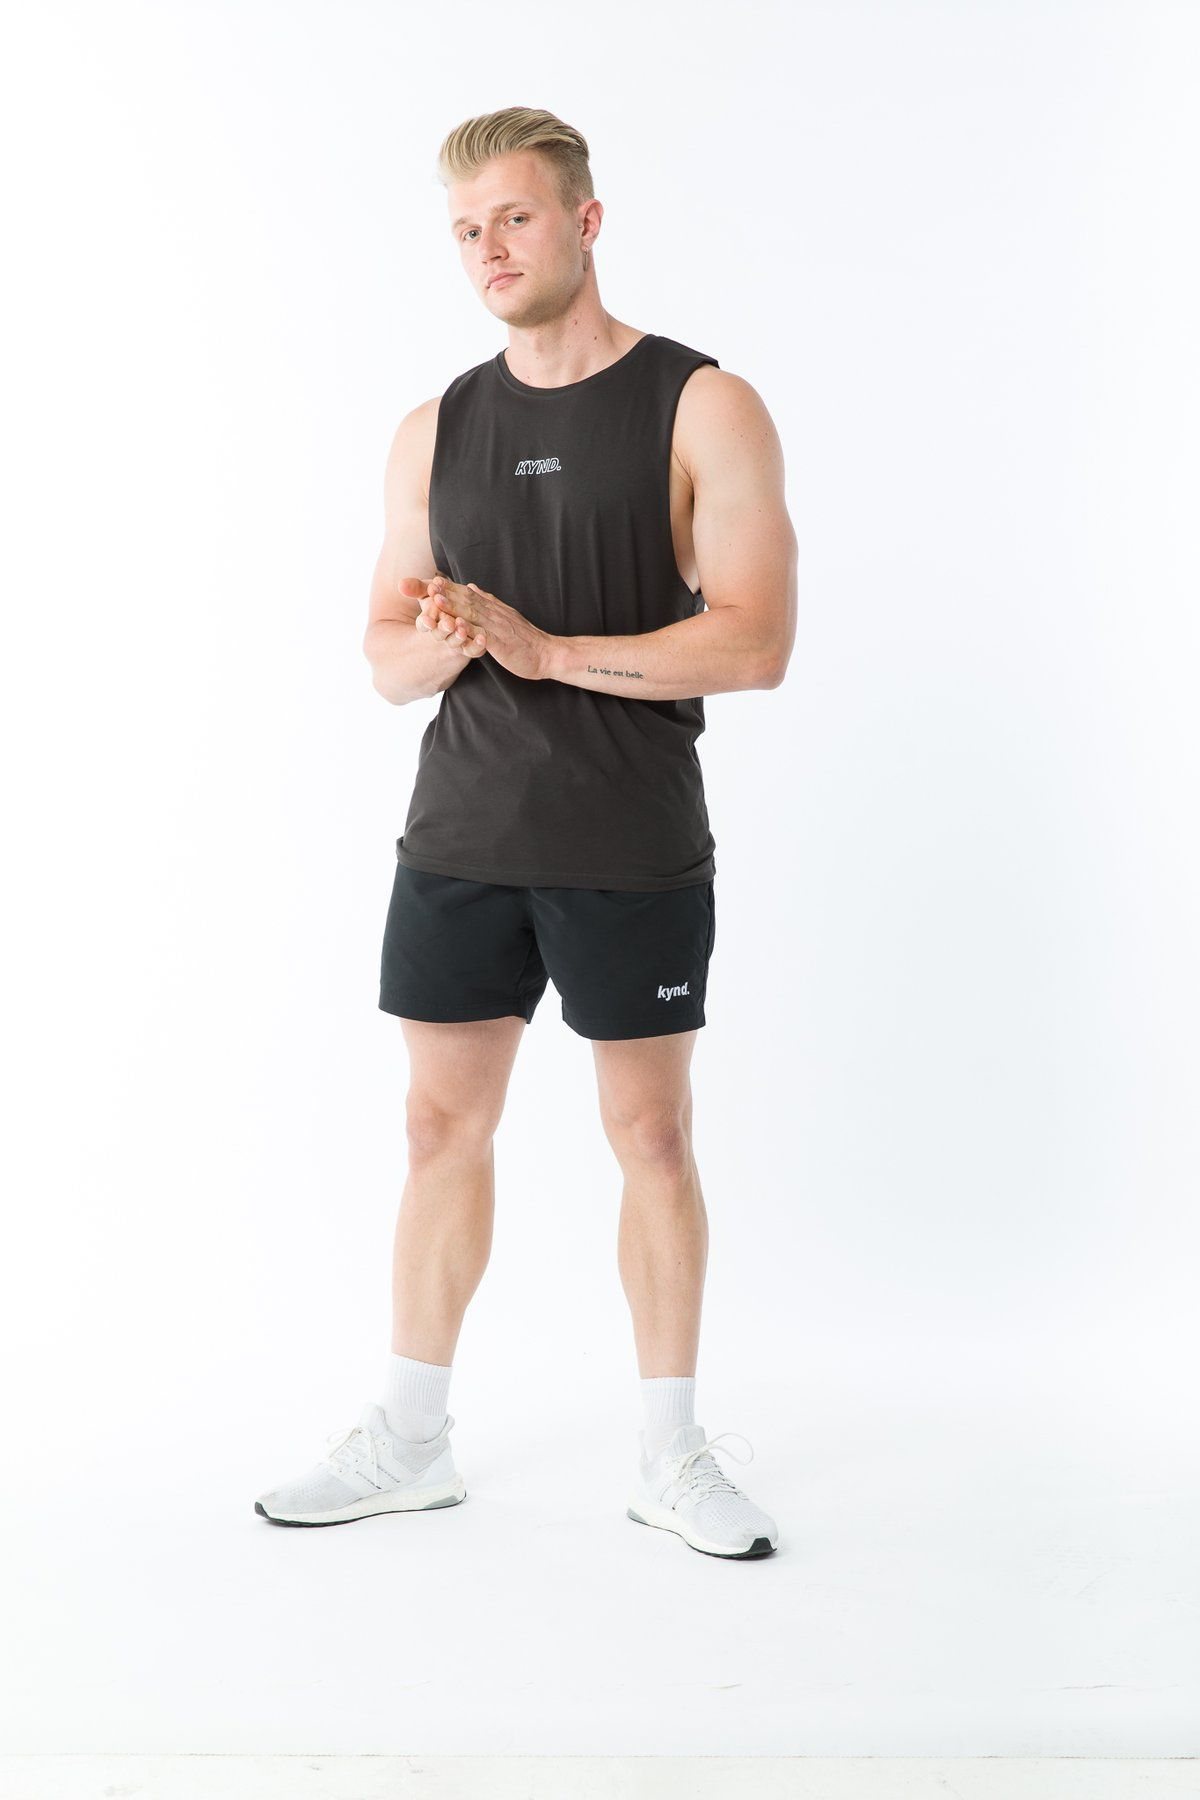 Kynd 01 Outline Tank - Charcoal